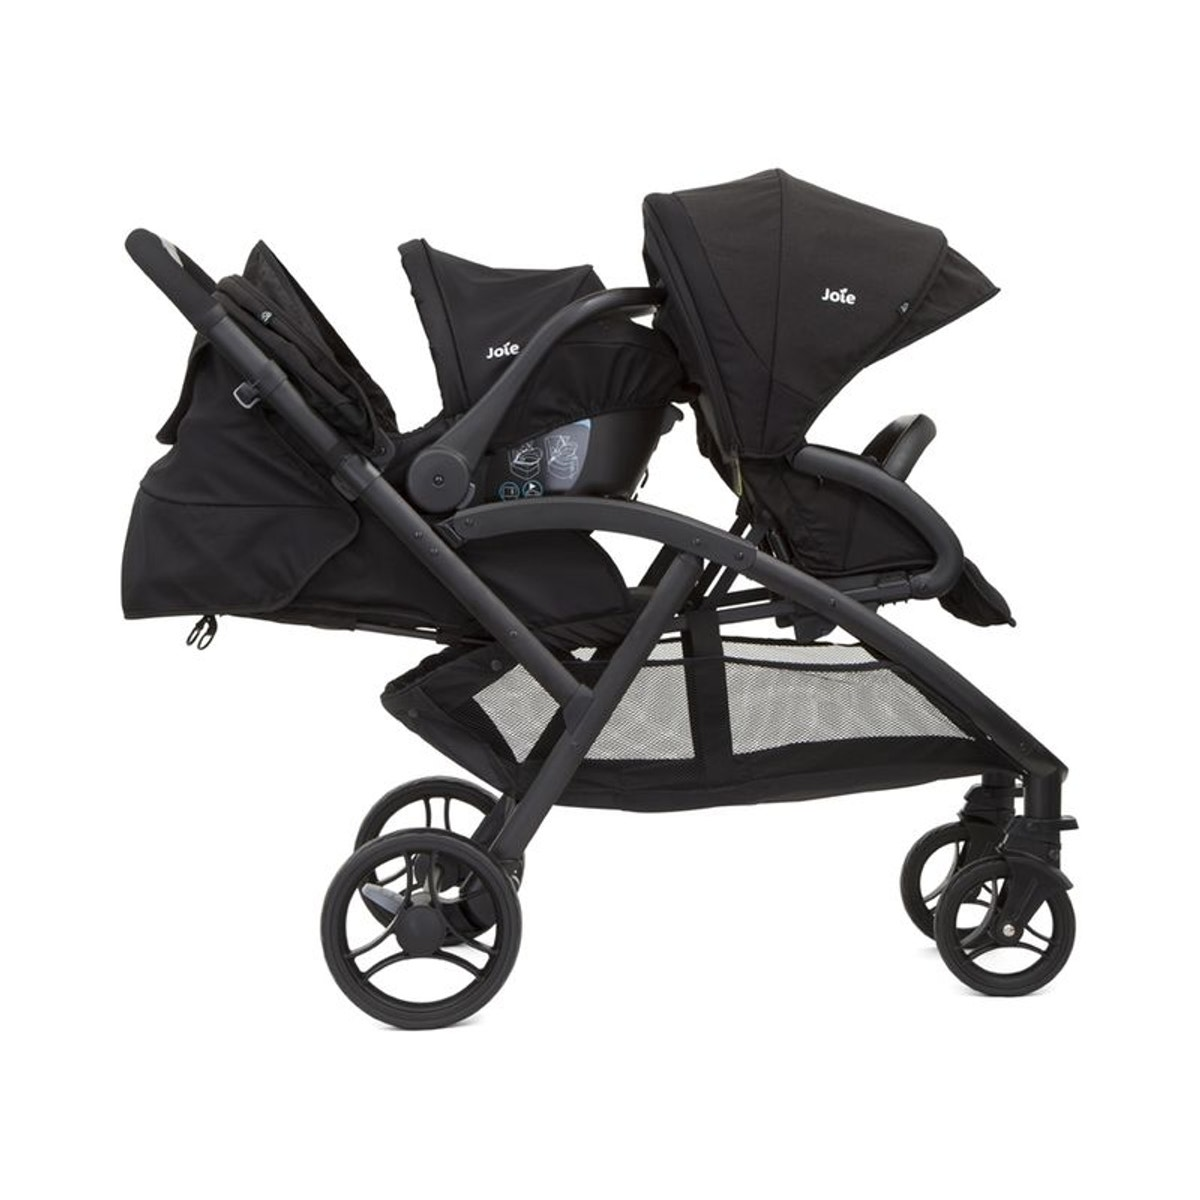 Poussette Double Evalite Duo - Coal - Black - Taille : Taille